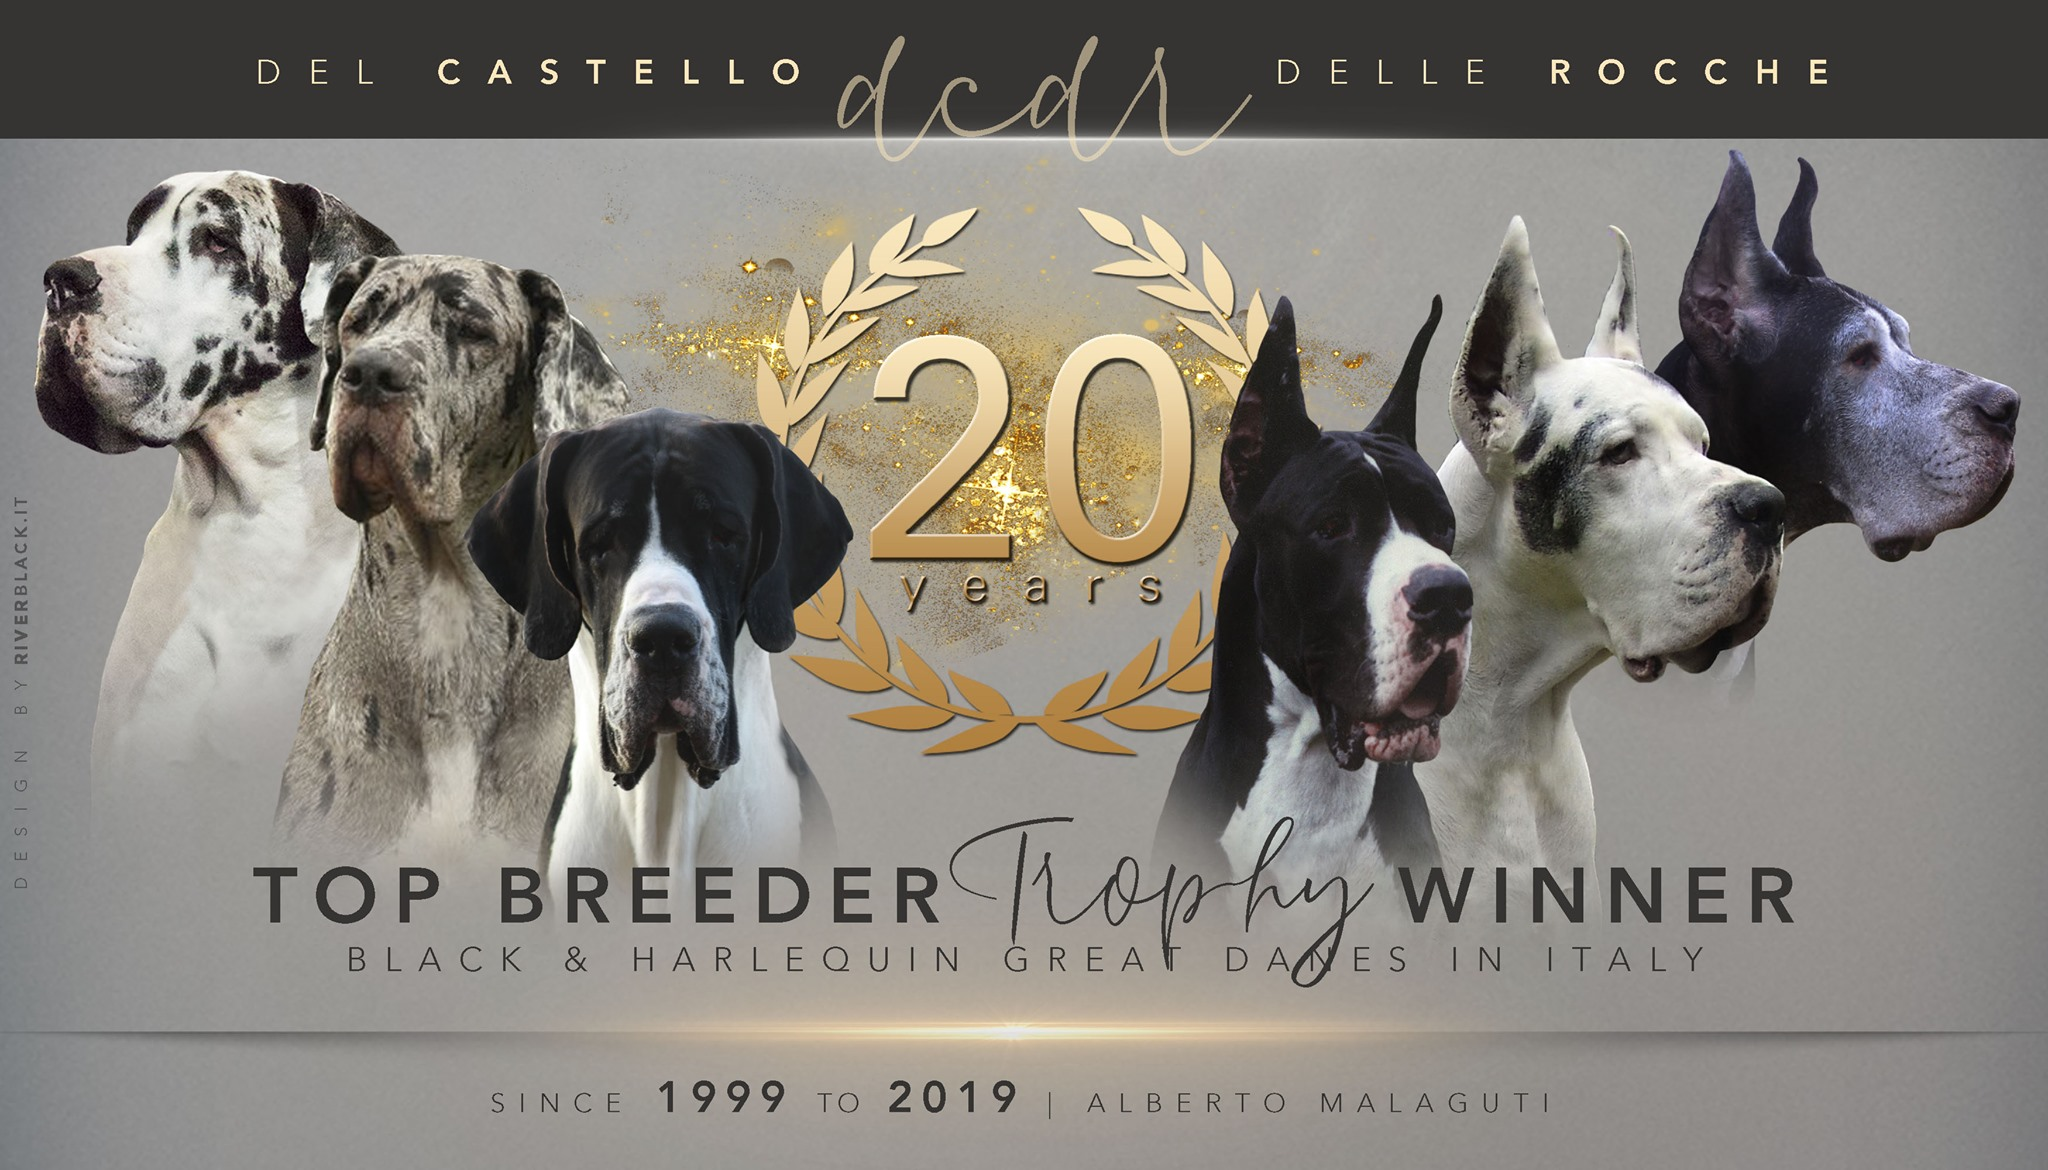 20 years Top breeder trophy winner